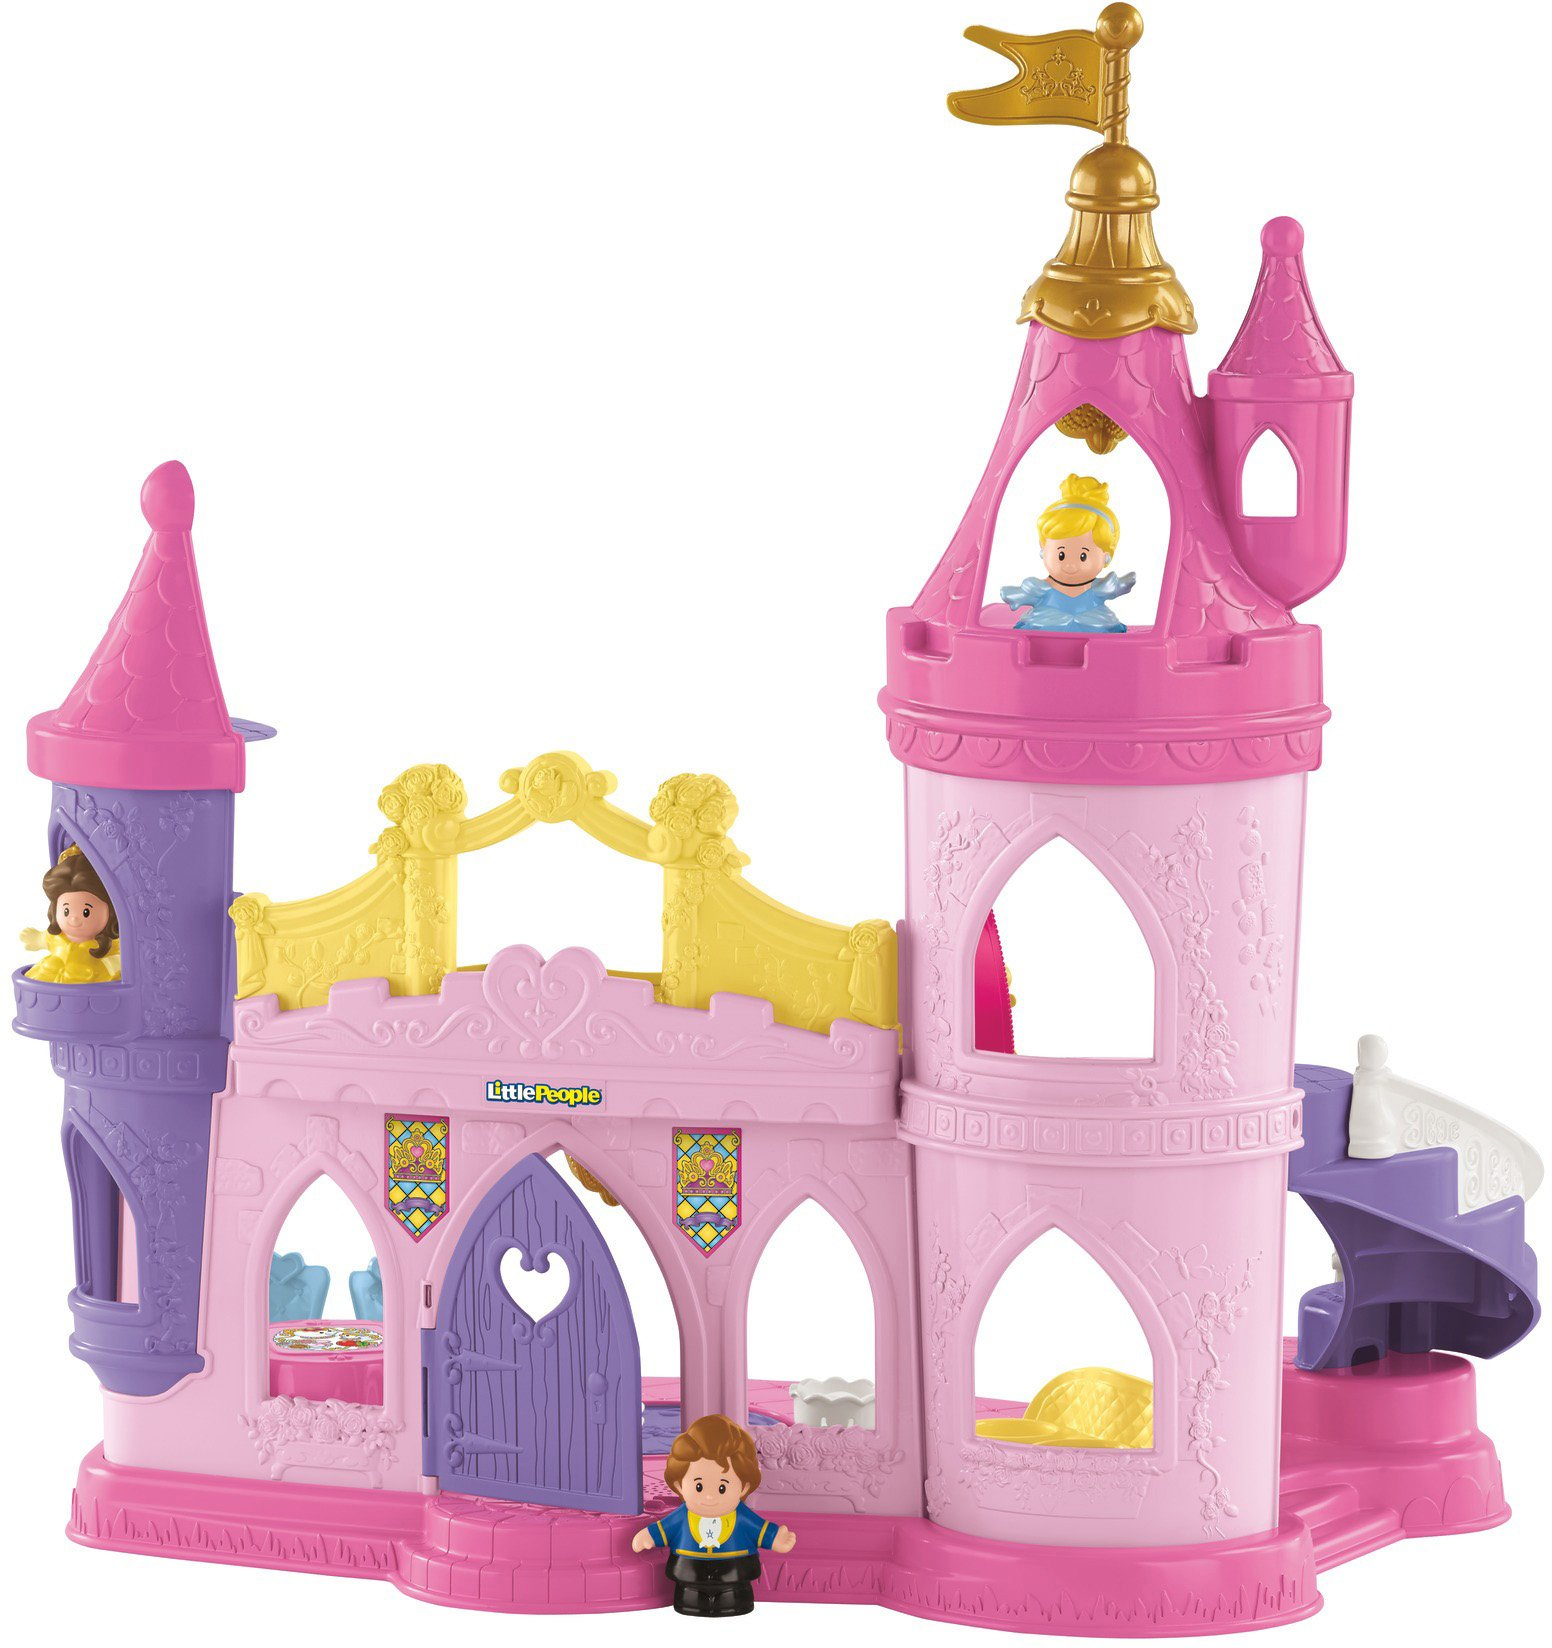 Fisher-Price Little People Disney Princess, Musical Dancing Palace by Fisher-Price (Image #8)